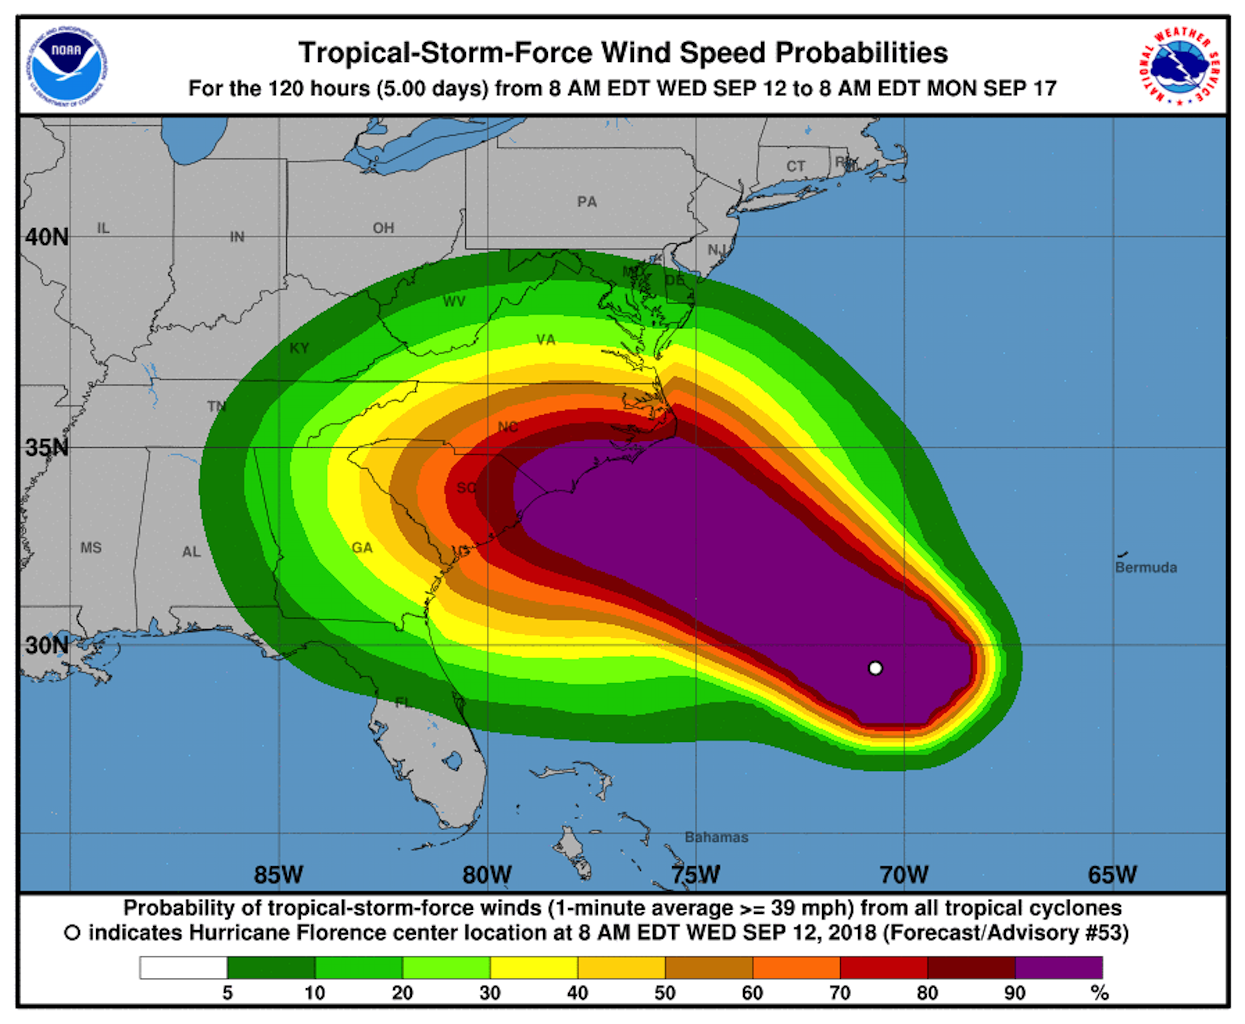 Hurricane Florence map from the NHC